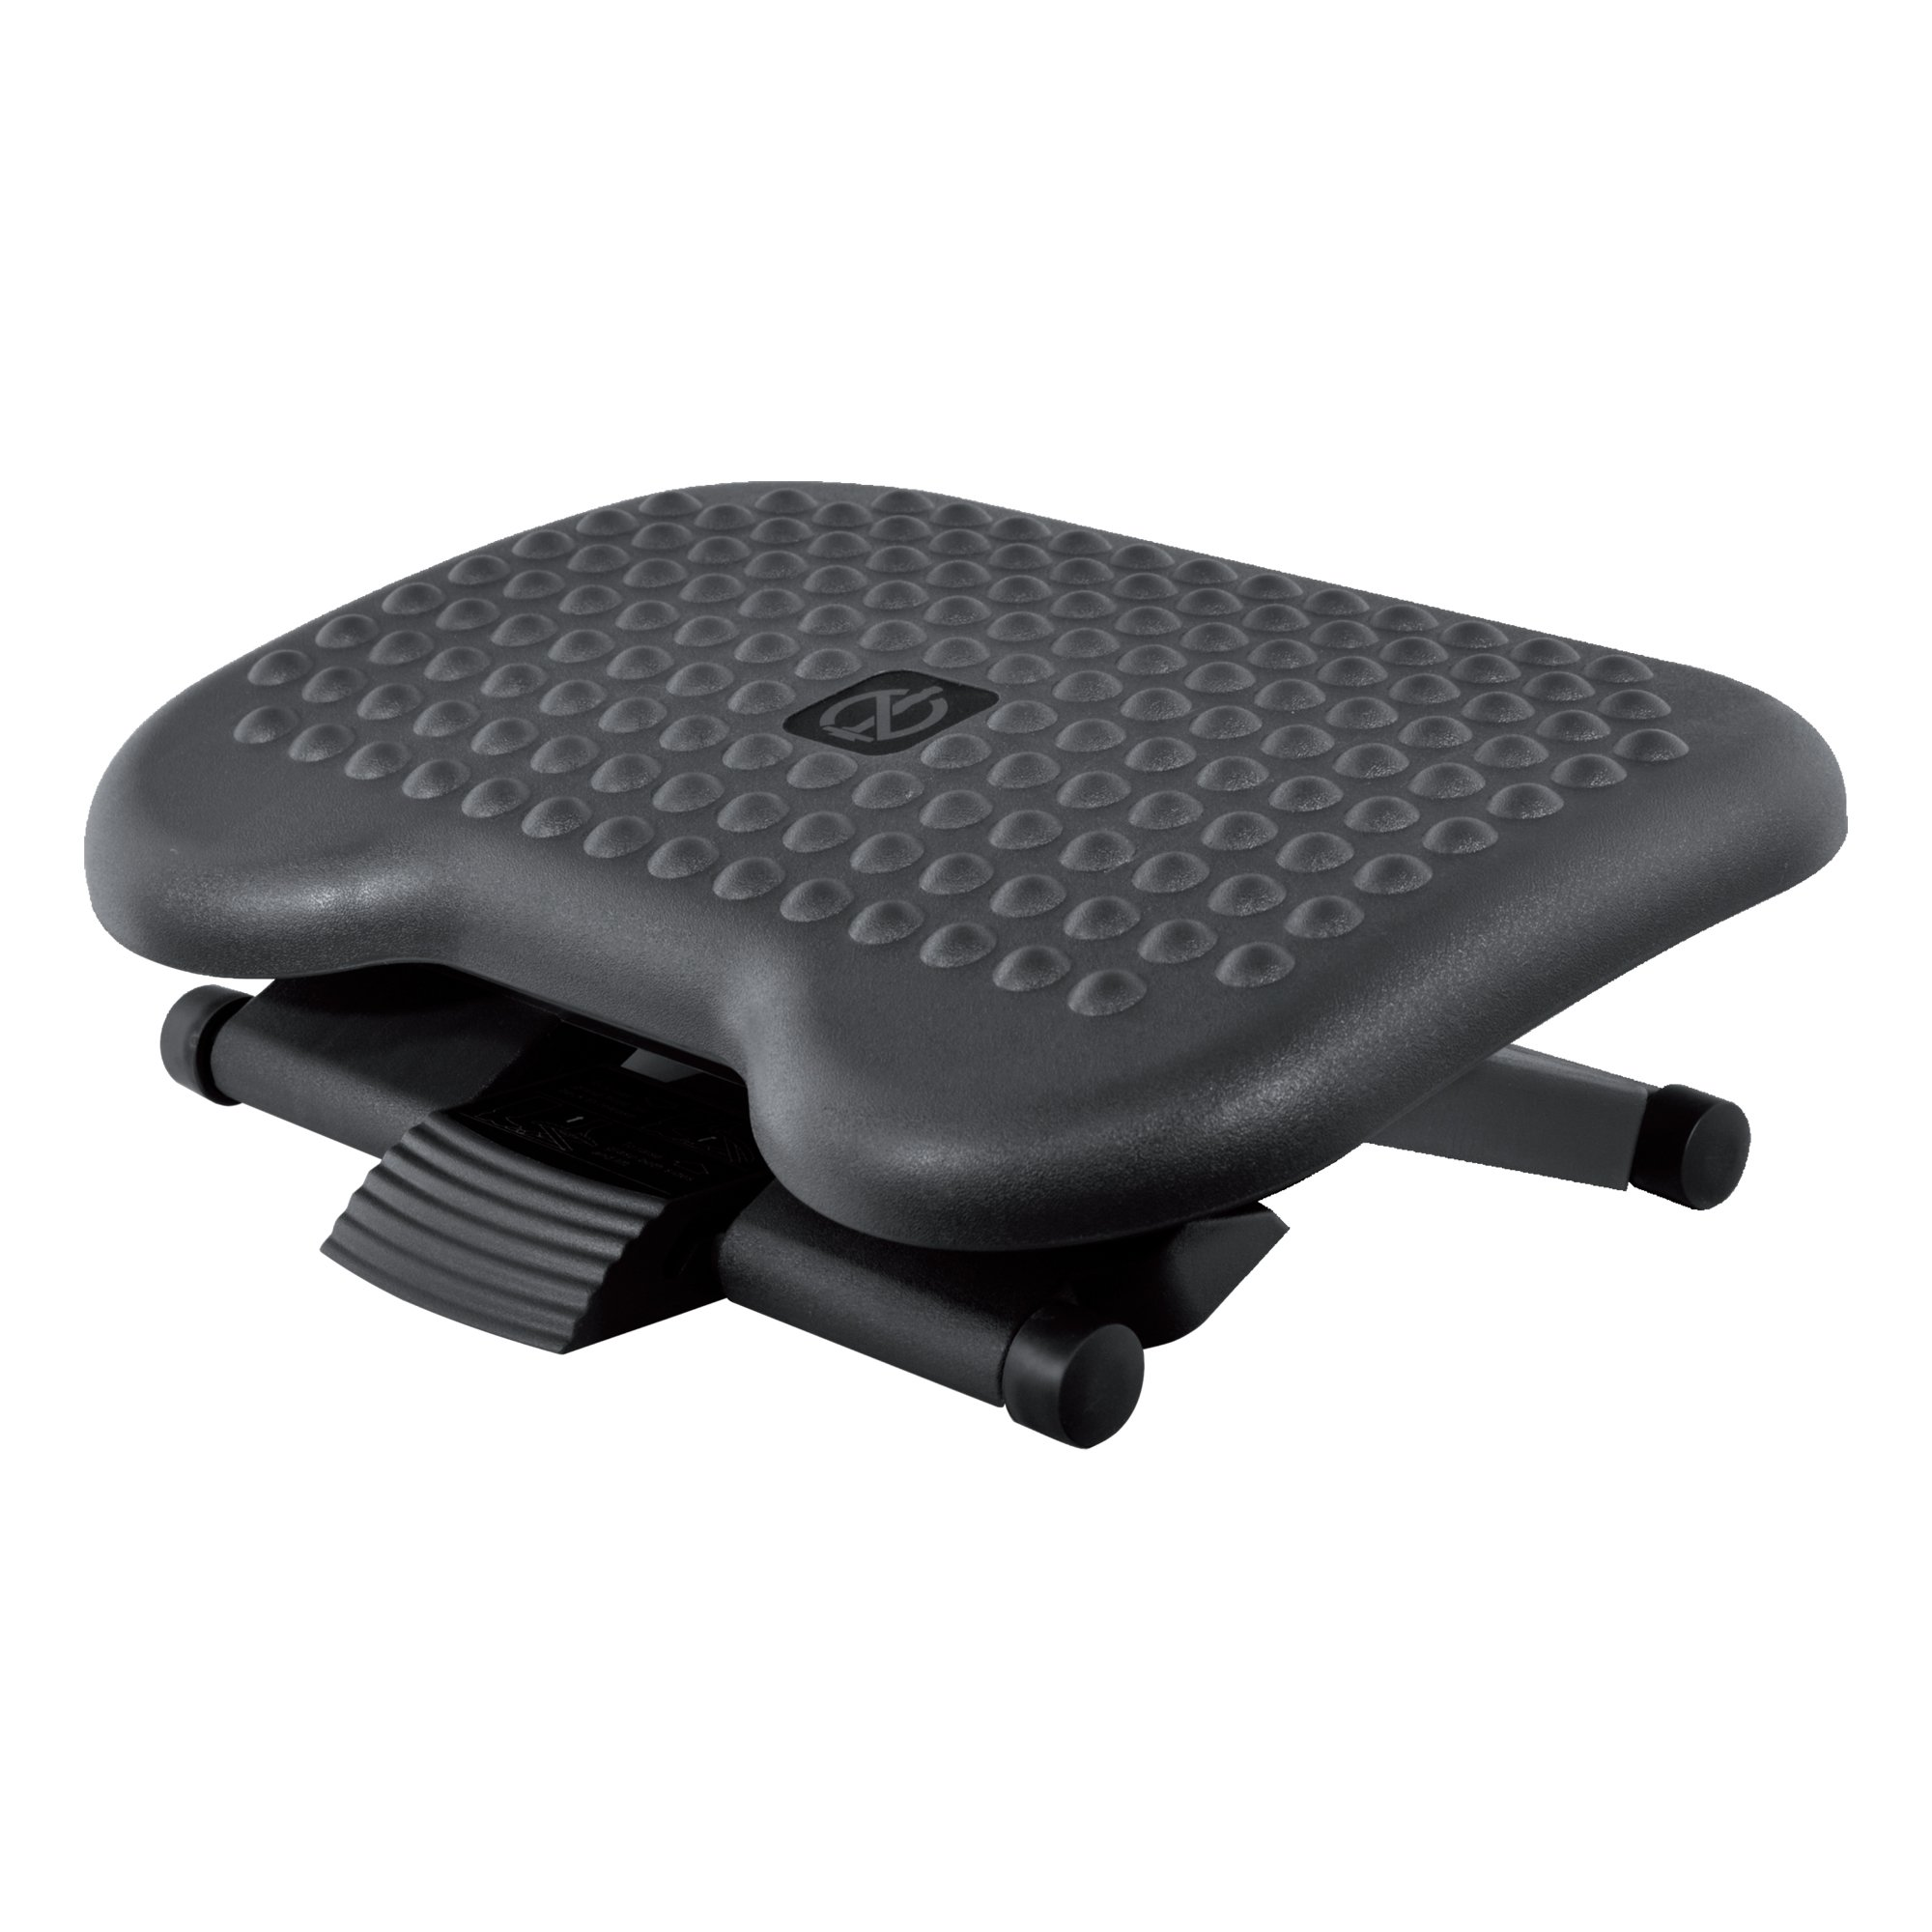 Nuova Premium Ergonomic Footrest - Adjustable Angle & 3 Different Height Position - FR6100 Foot Rest